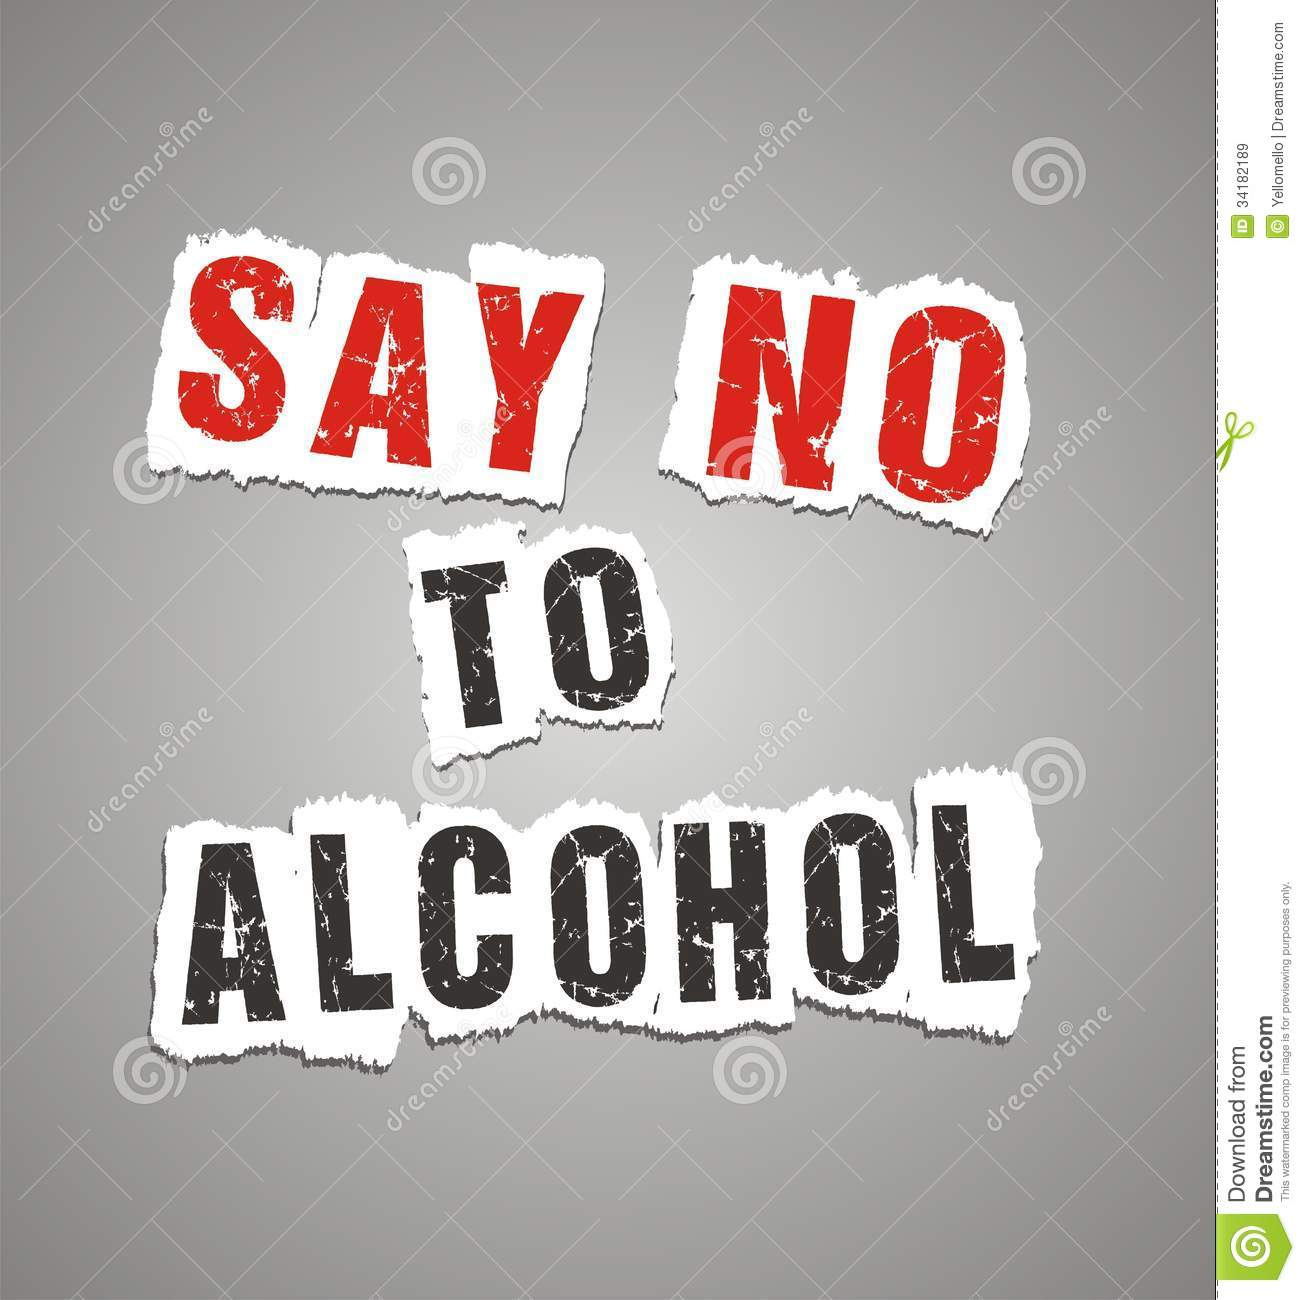 Say no to alcohol poster stock illustration  Illustration of